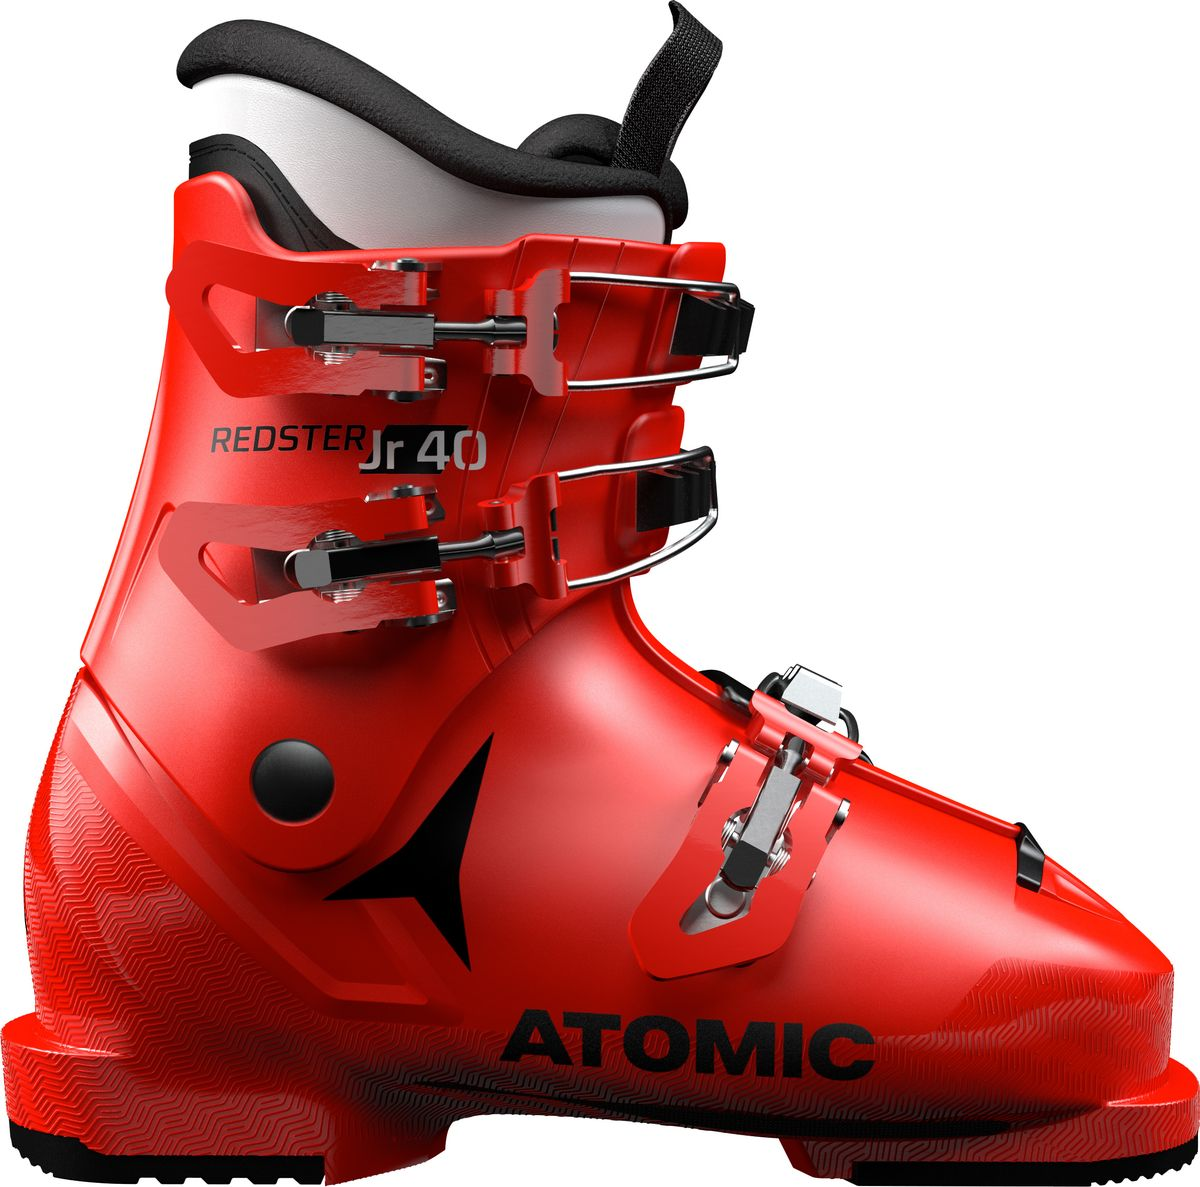 Ботинки горнолыжные Atomic Redster Jr 40, цвет: красный, черный. Размер 33/34 top brand 2017 new mens sports clock watch retro design leather band analog alloy quartz wrist watches relogio masculino